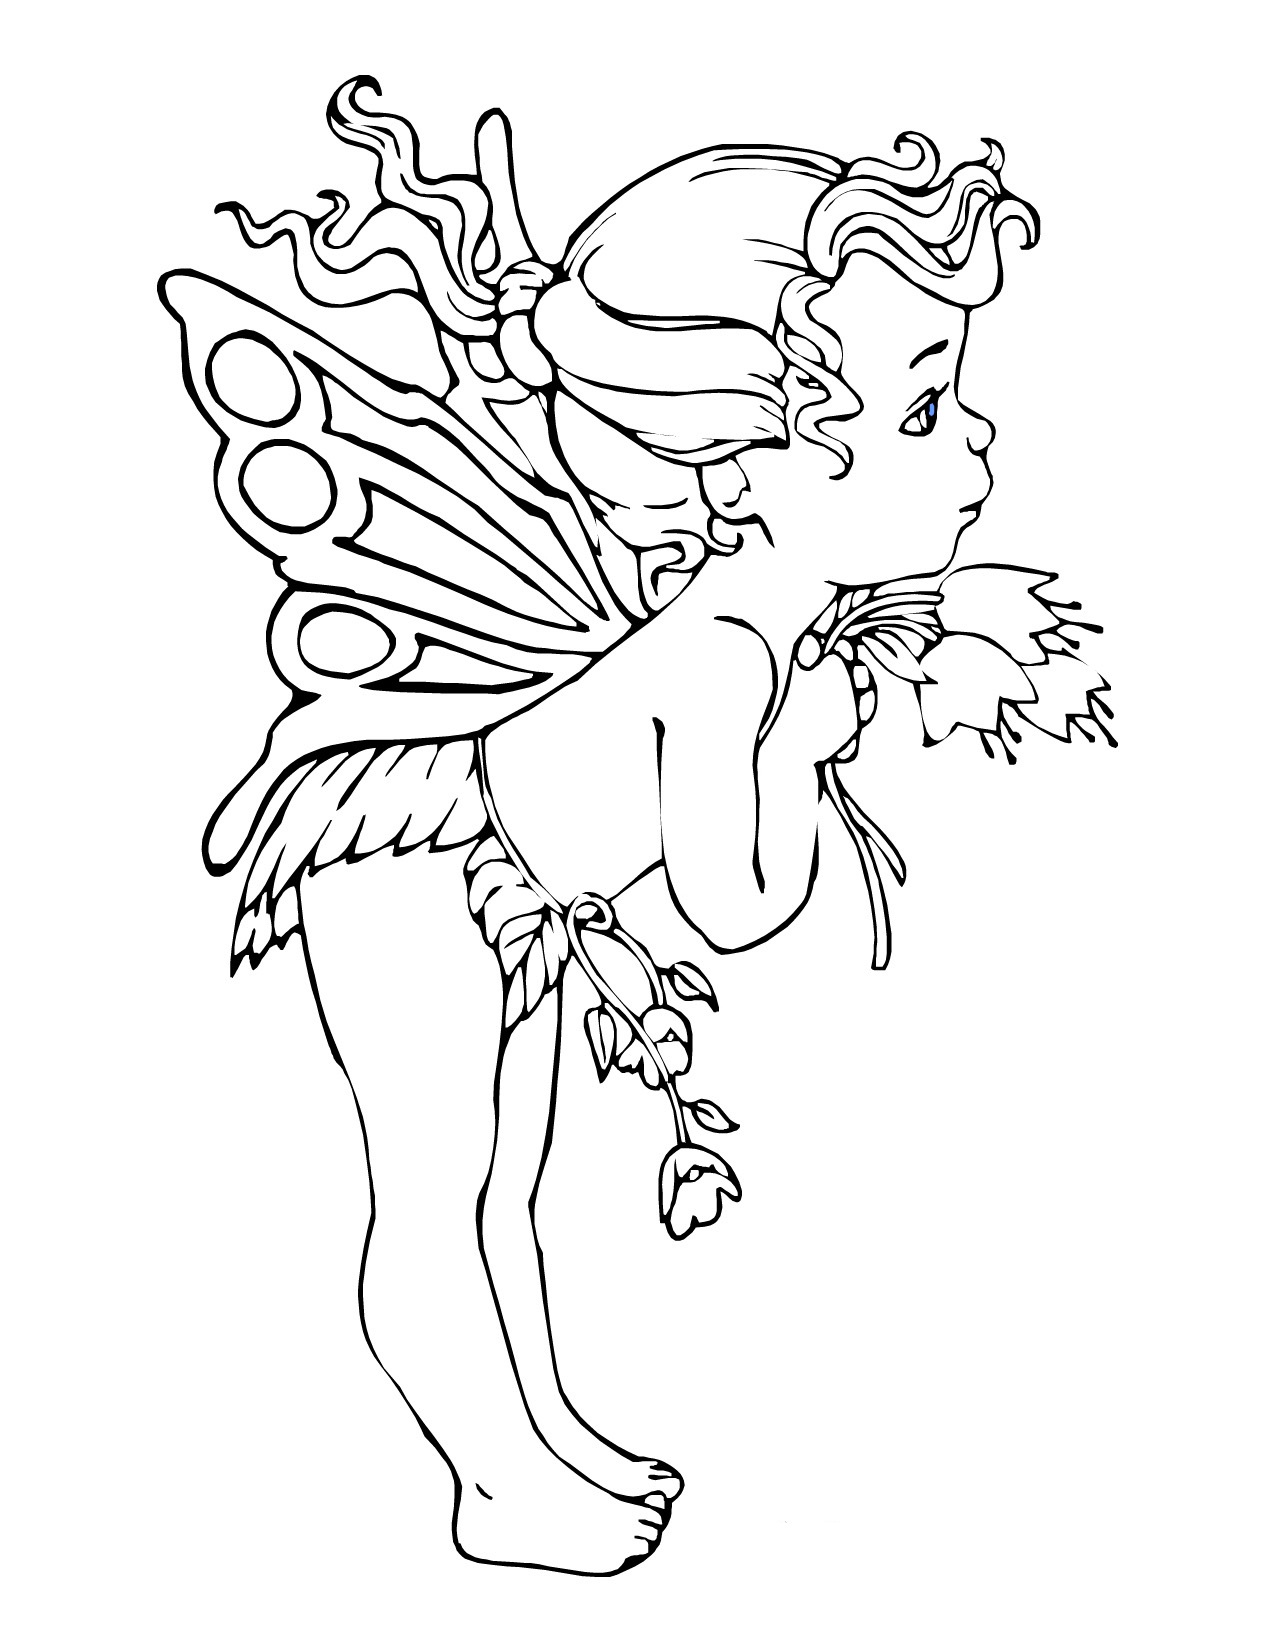 Coloring page x wing - Fairy Coloring Pages Printable